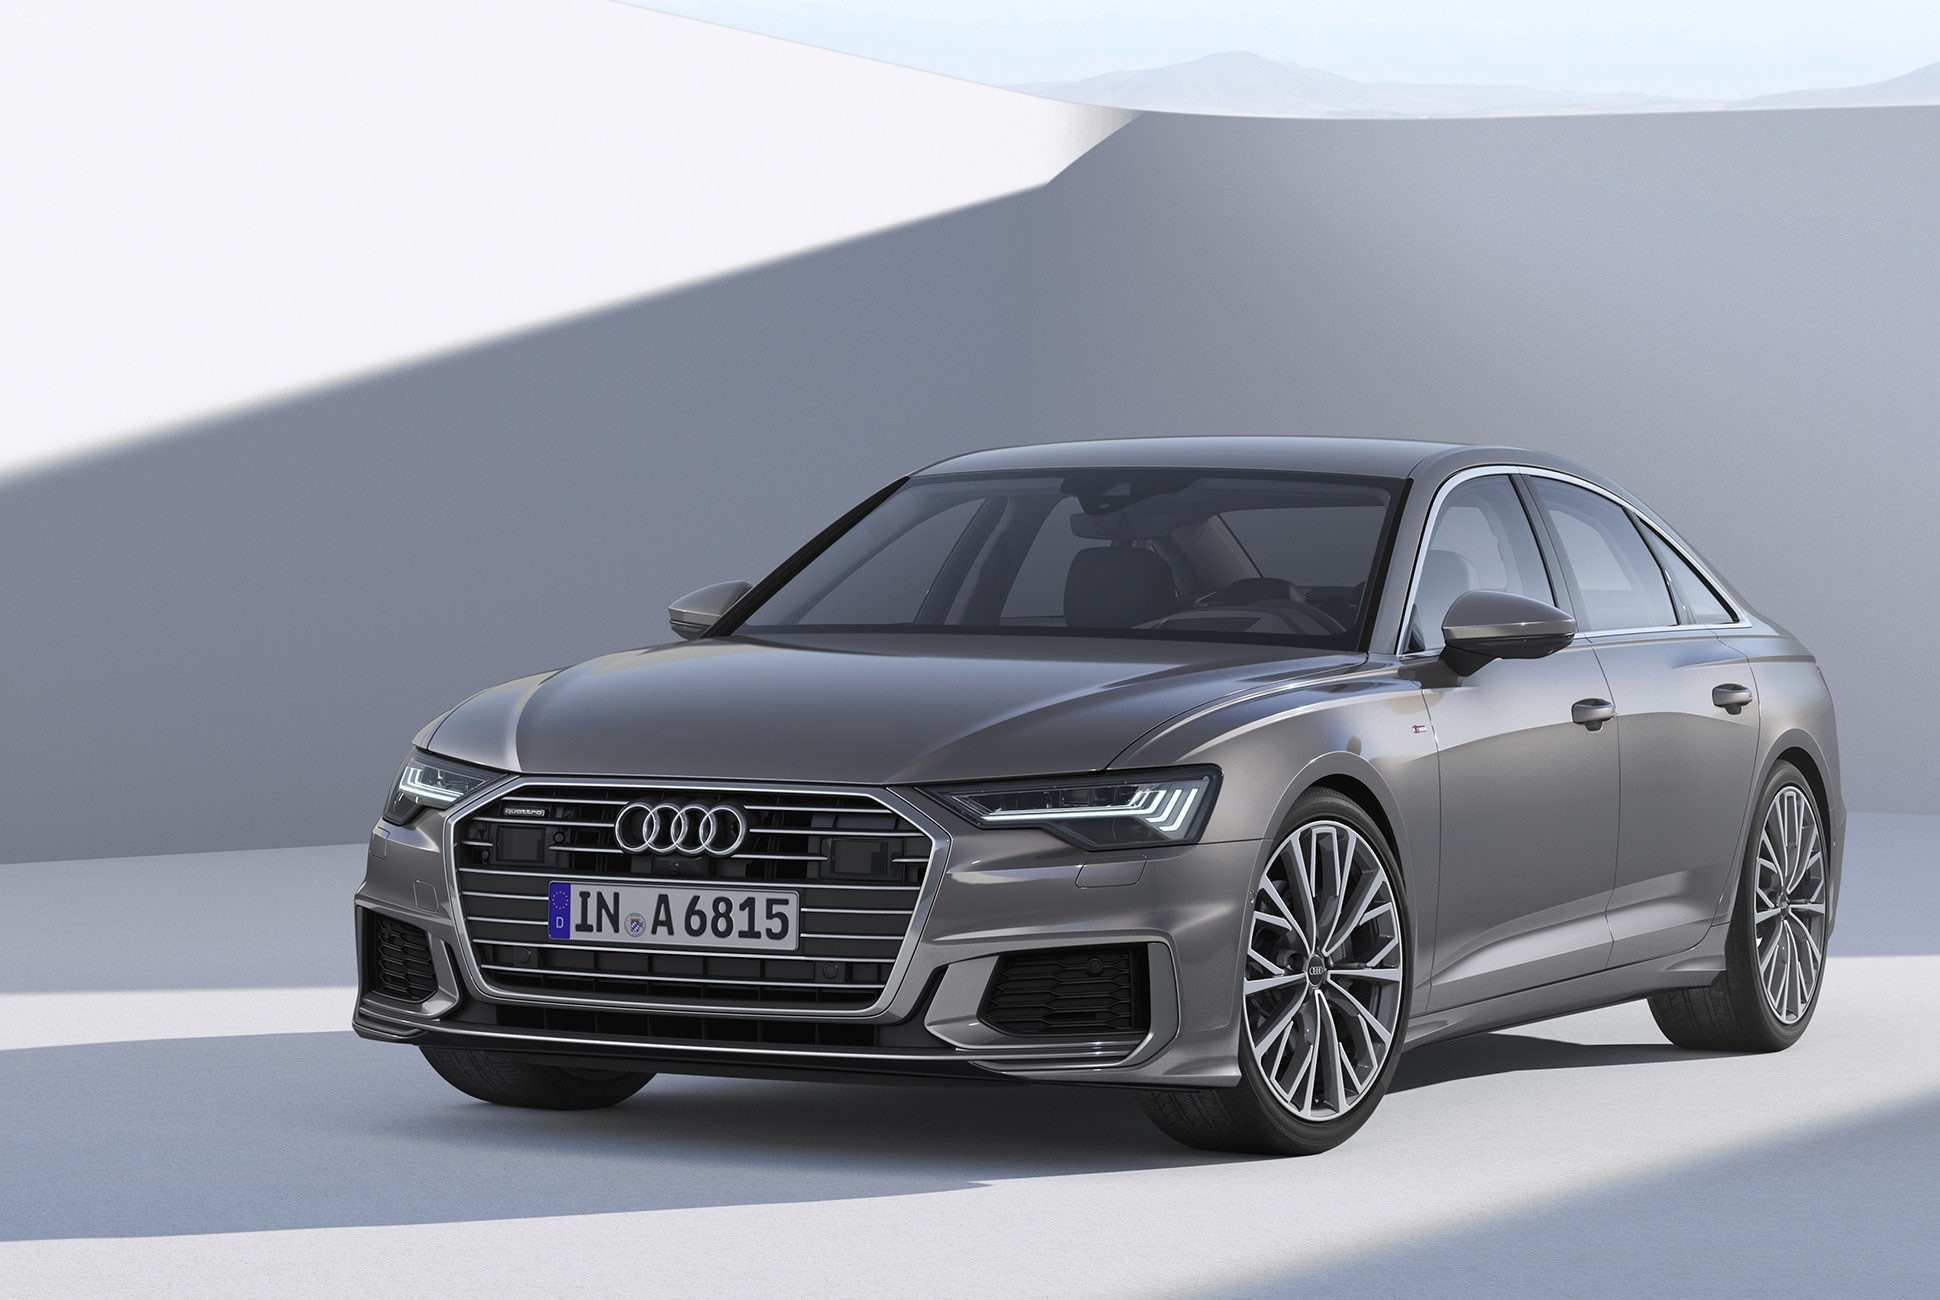 22 Concept of The Audi A6 2019 Launch Date Review Spy Shoot with The Audi A6 2019 Launch Date Review